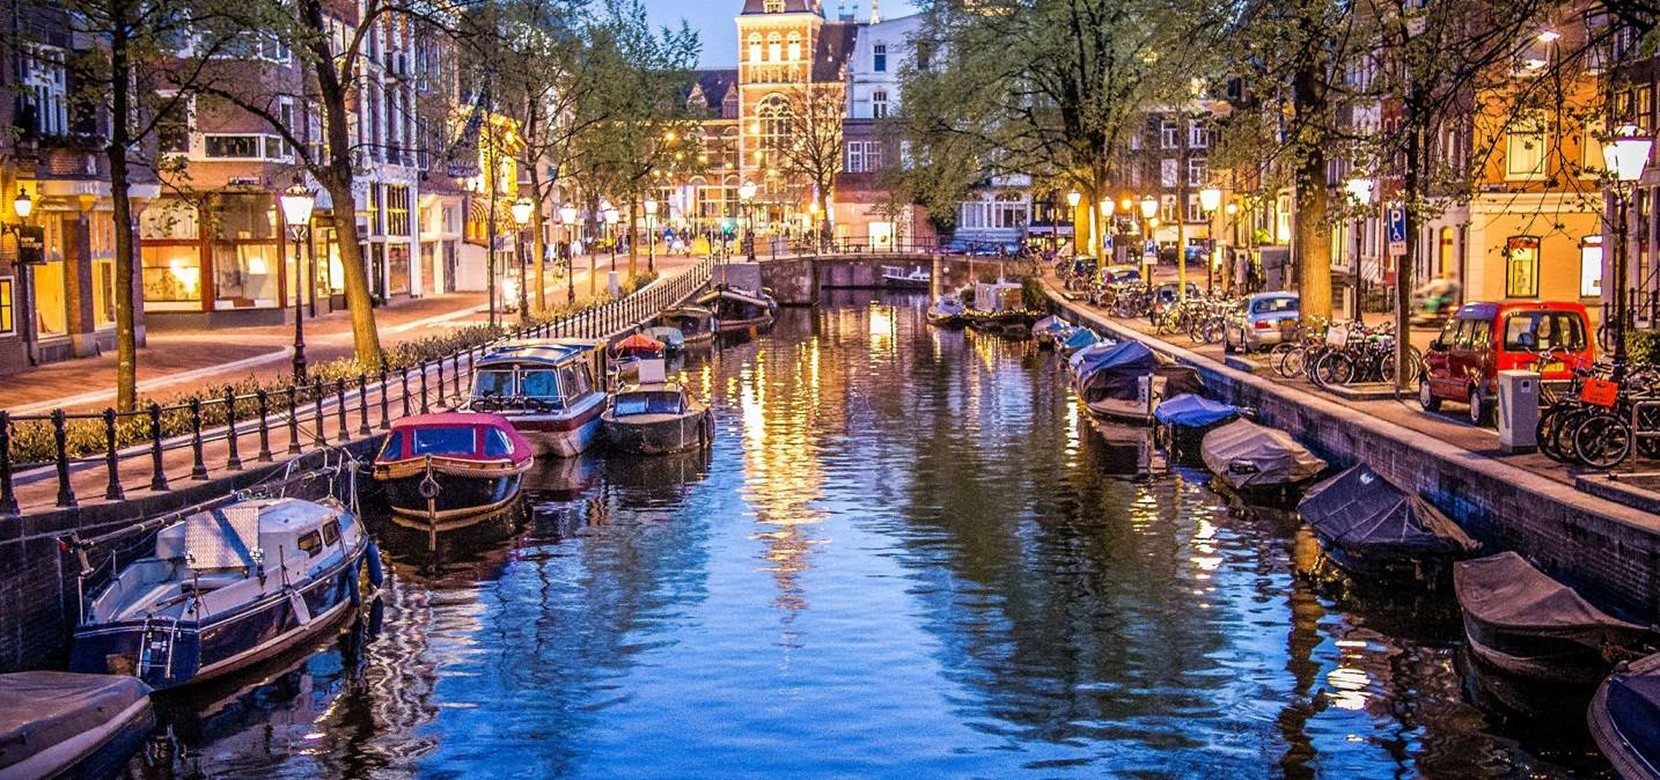 Image result for canals in amsterdam